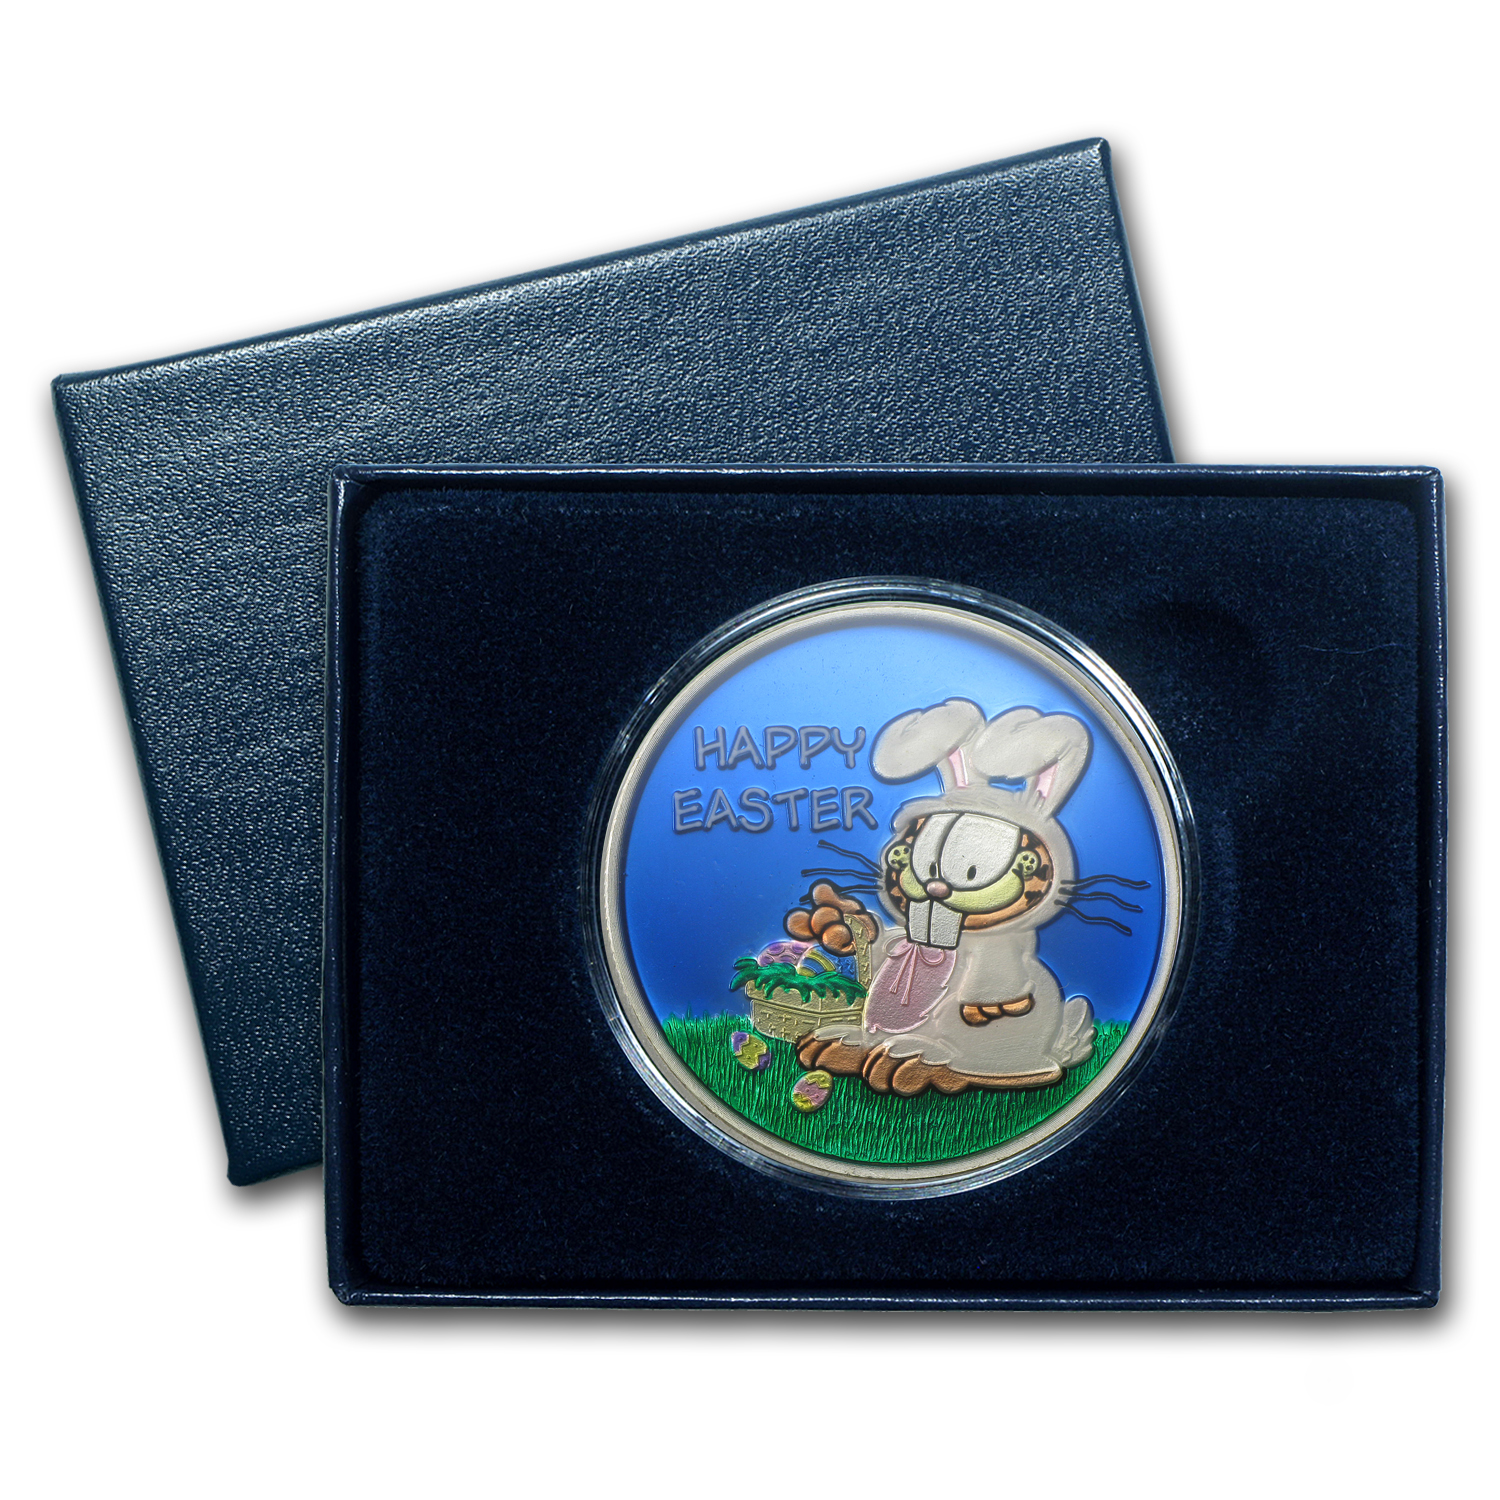 1 oz Silver Round - Garfield Easter (Enameled, w/Box & Capsule)